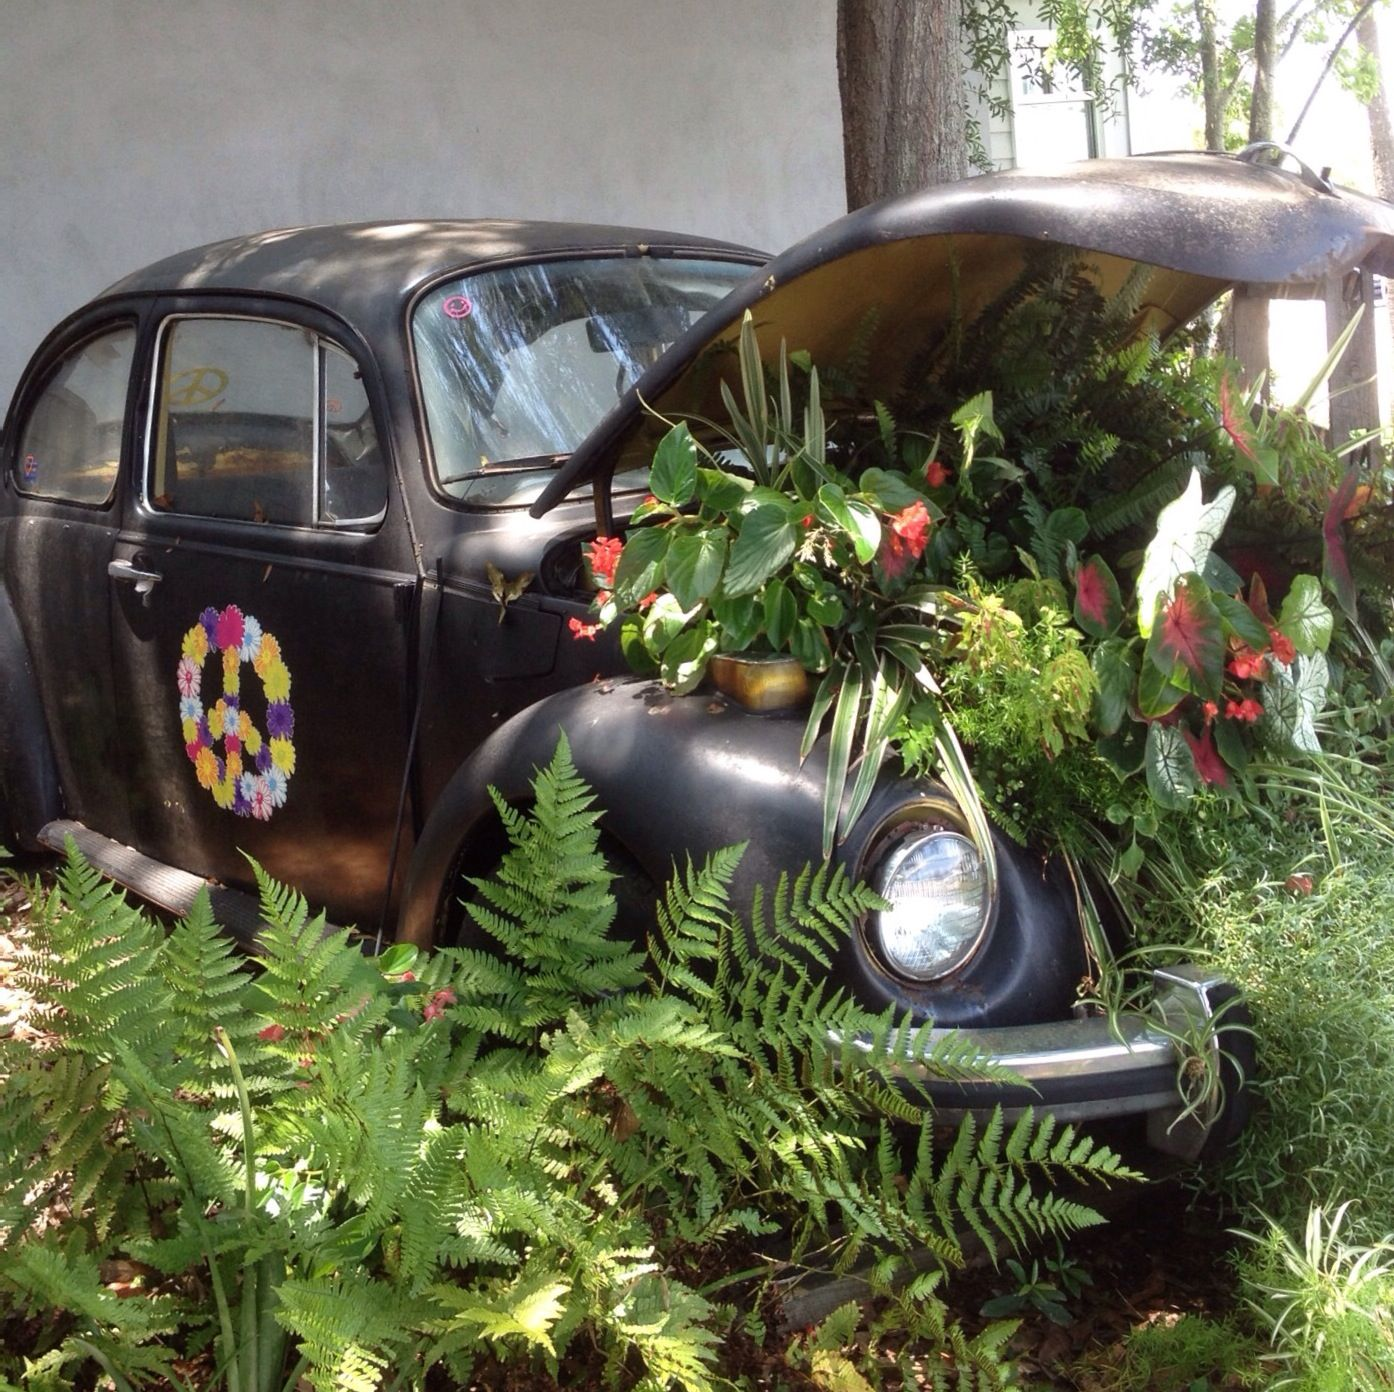 Volkswagen Mt Pleasant >> Cool Volkswagen Beetle As A Garden Decoration At The Pickled